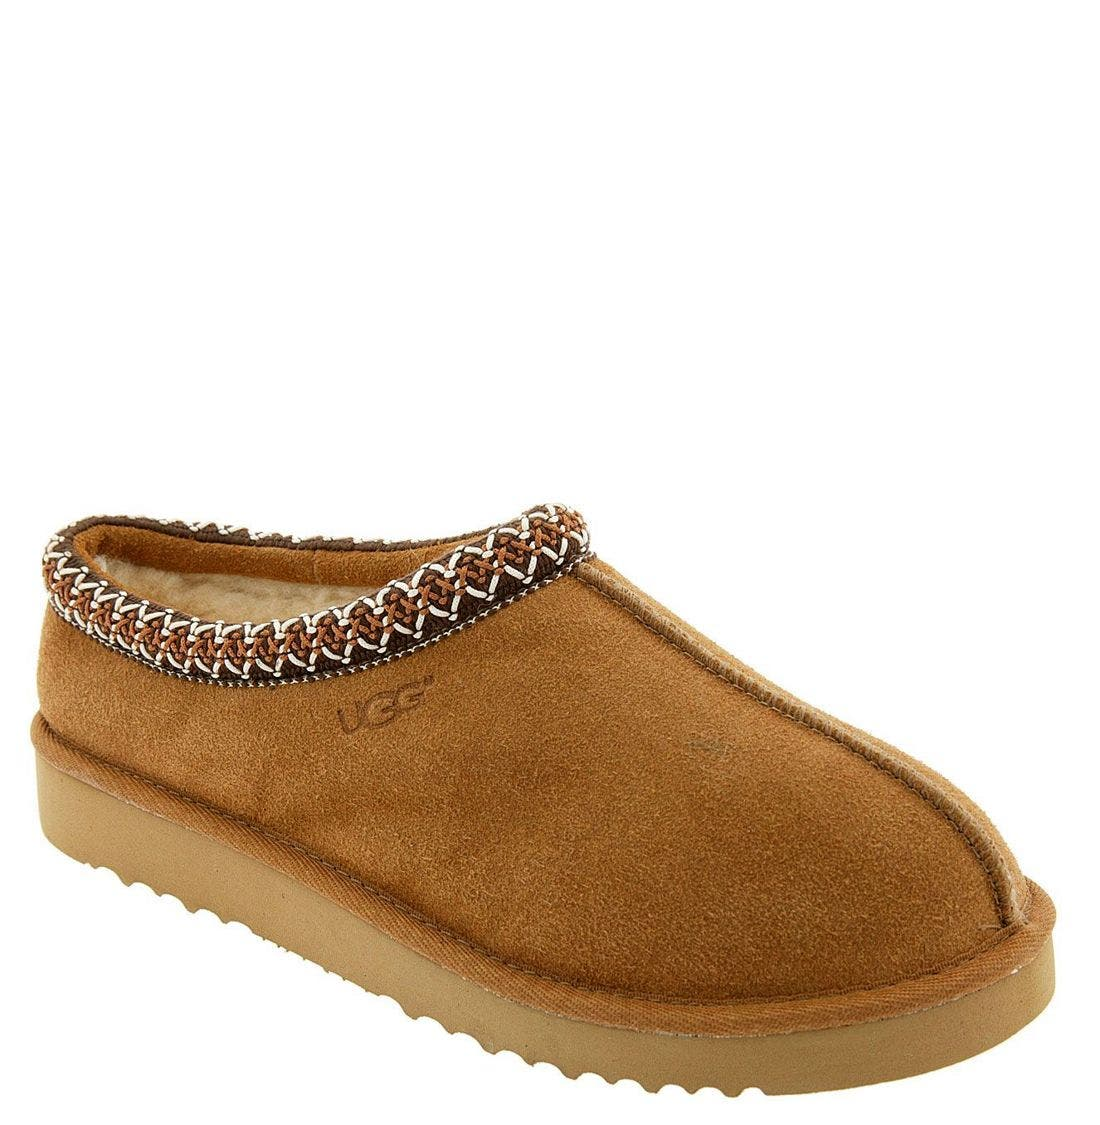 'Tasman' Slipper,                         Main,                         color, Chestnut